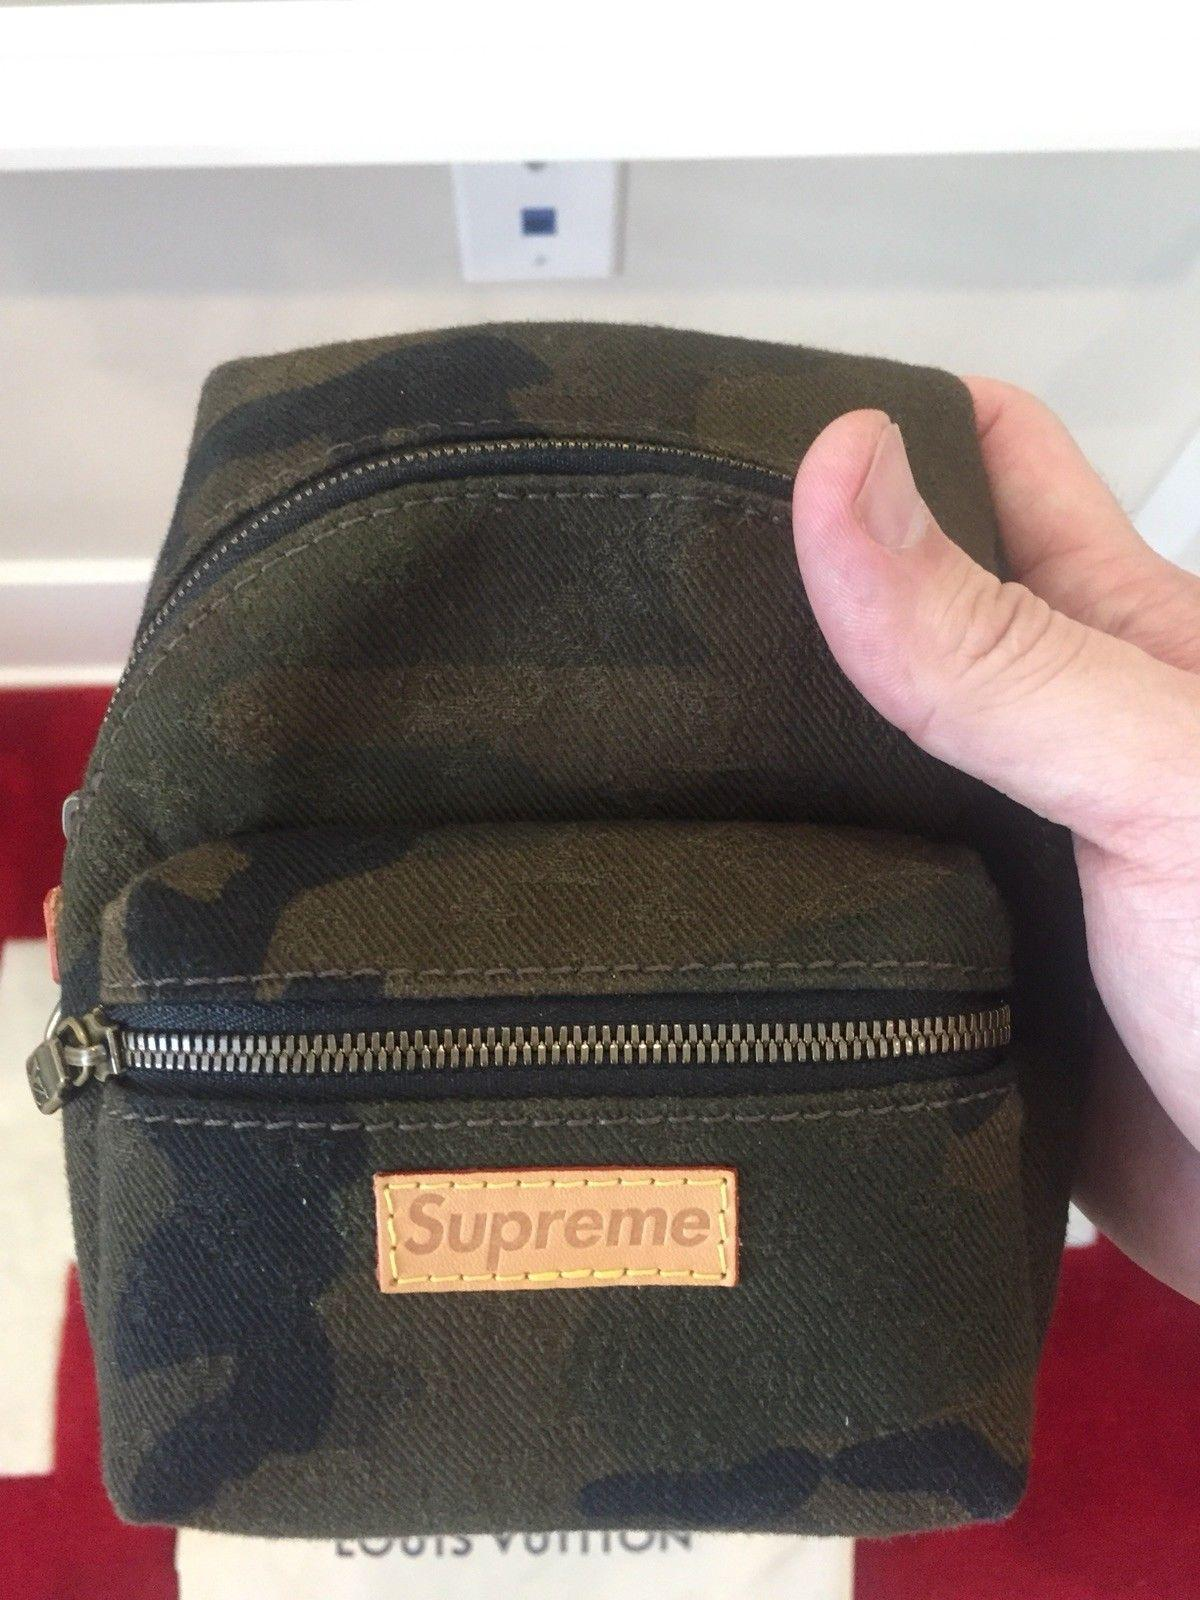 LOUIS VUITTON SUPREME Apollo Camo Nano Backpack Mini Book Bag Monogram M44201 3